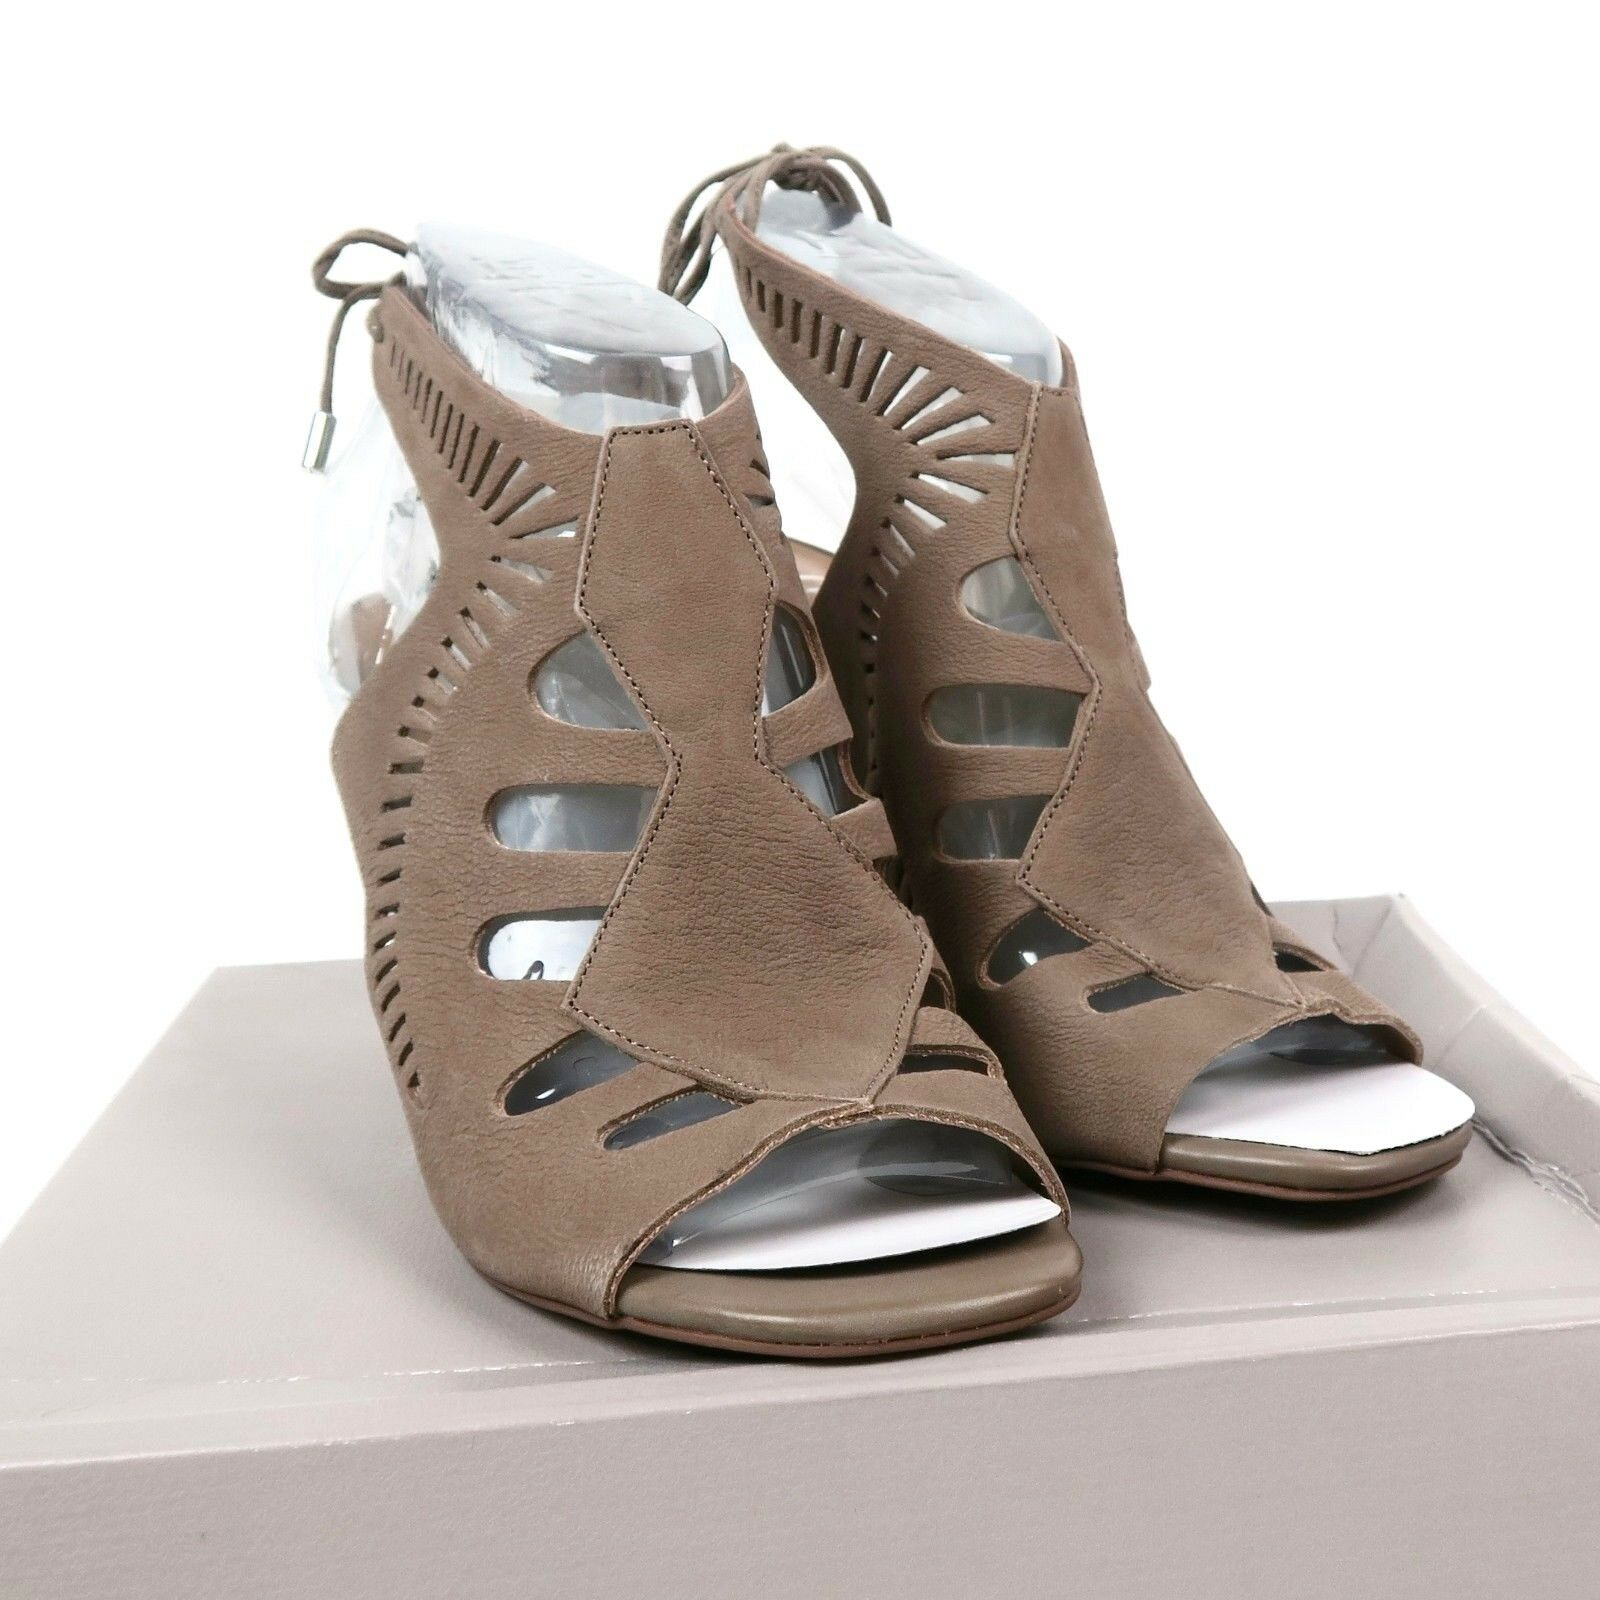 Franco Sarto Damenschuhe 'Carolina' Cut Out Sandale Suede Bootie Mushroom Taupe 7.5 M